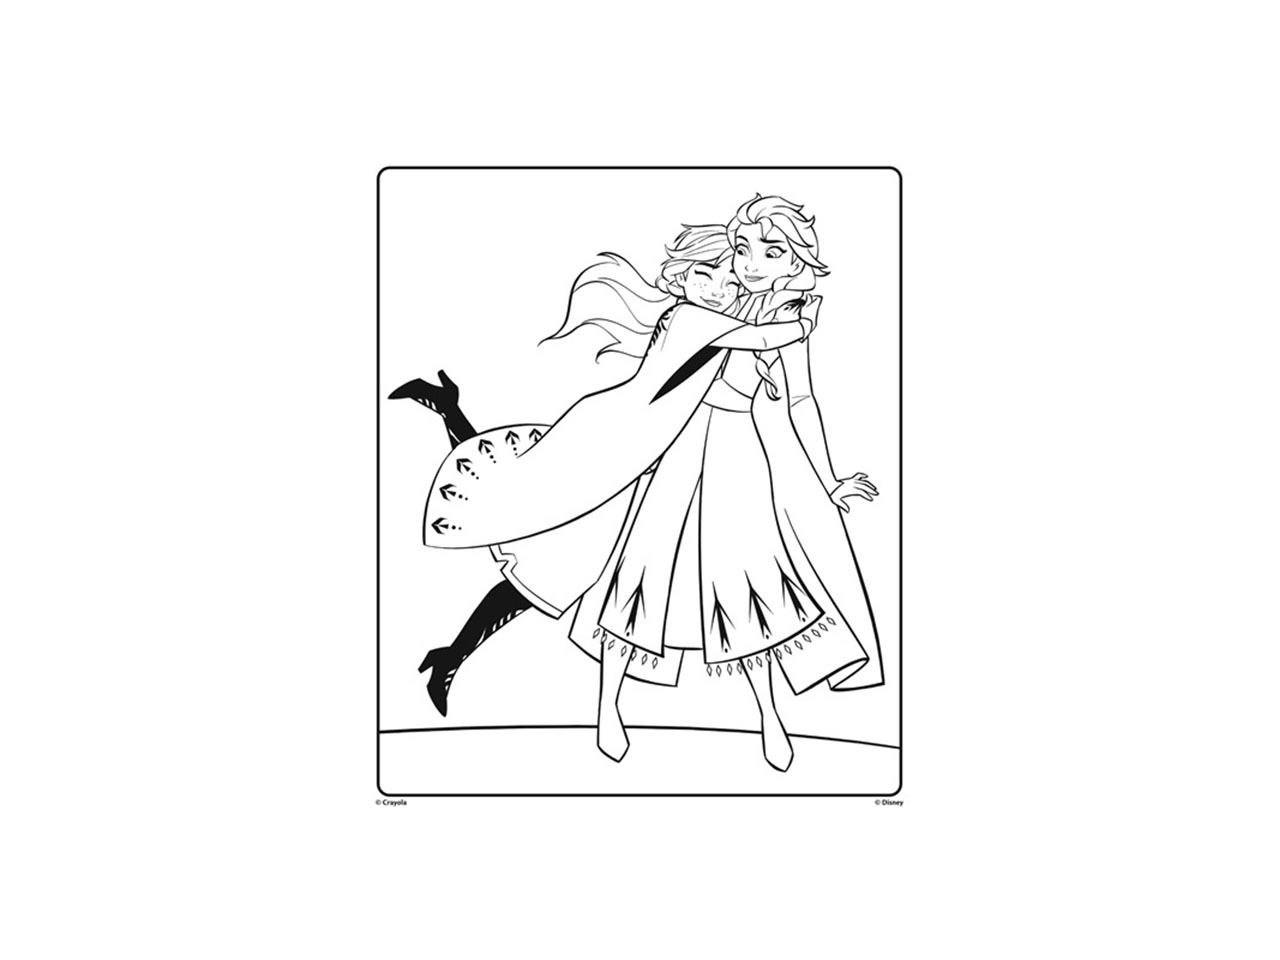 free coloring pages for kids 10 free colouring pages to keep the kids busy kids pages coloring for free